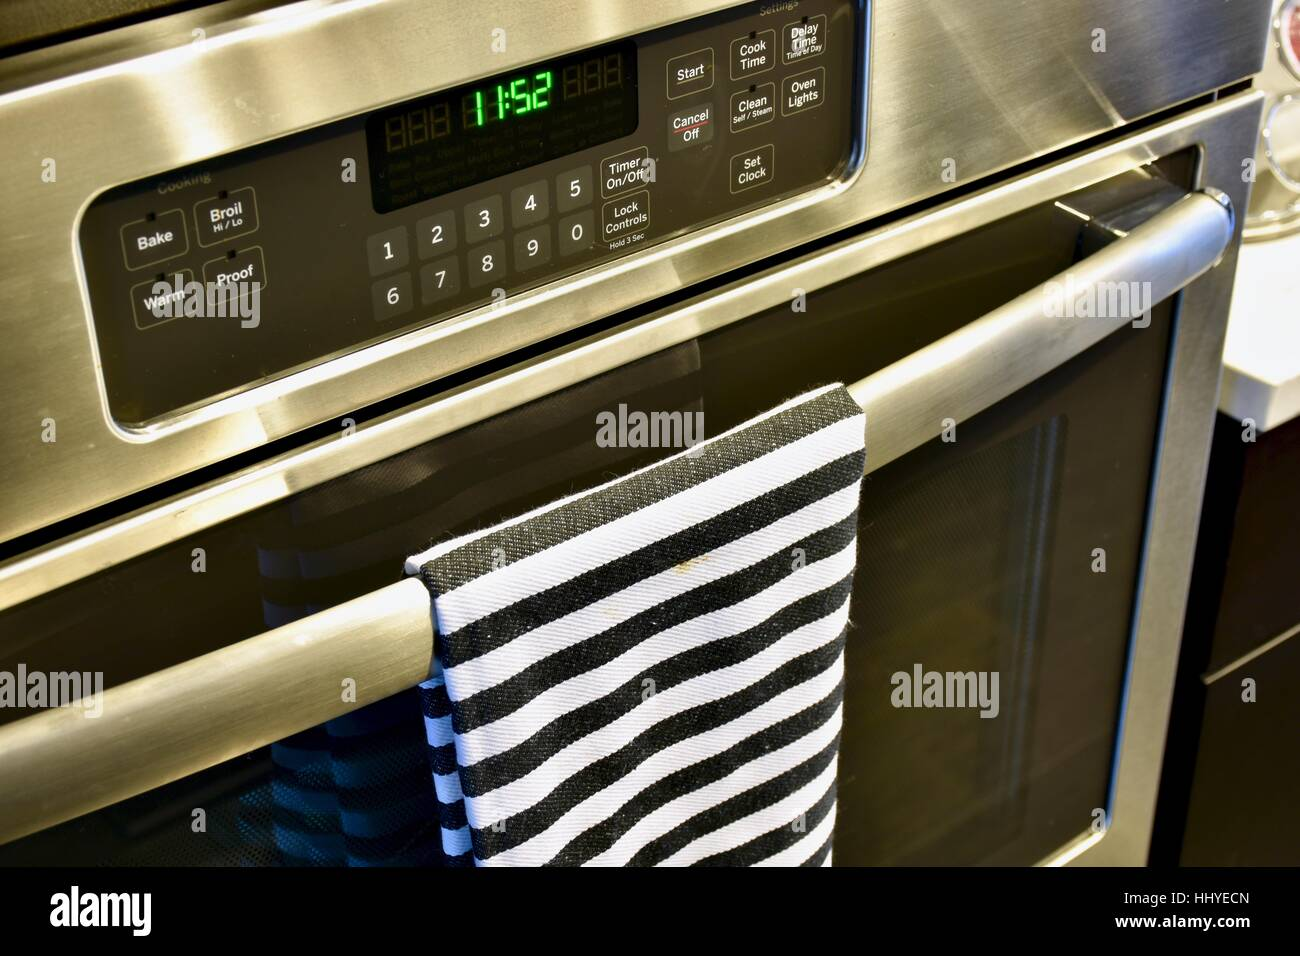 A General Electric brand oven in a modern home - Stock Image